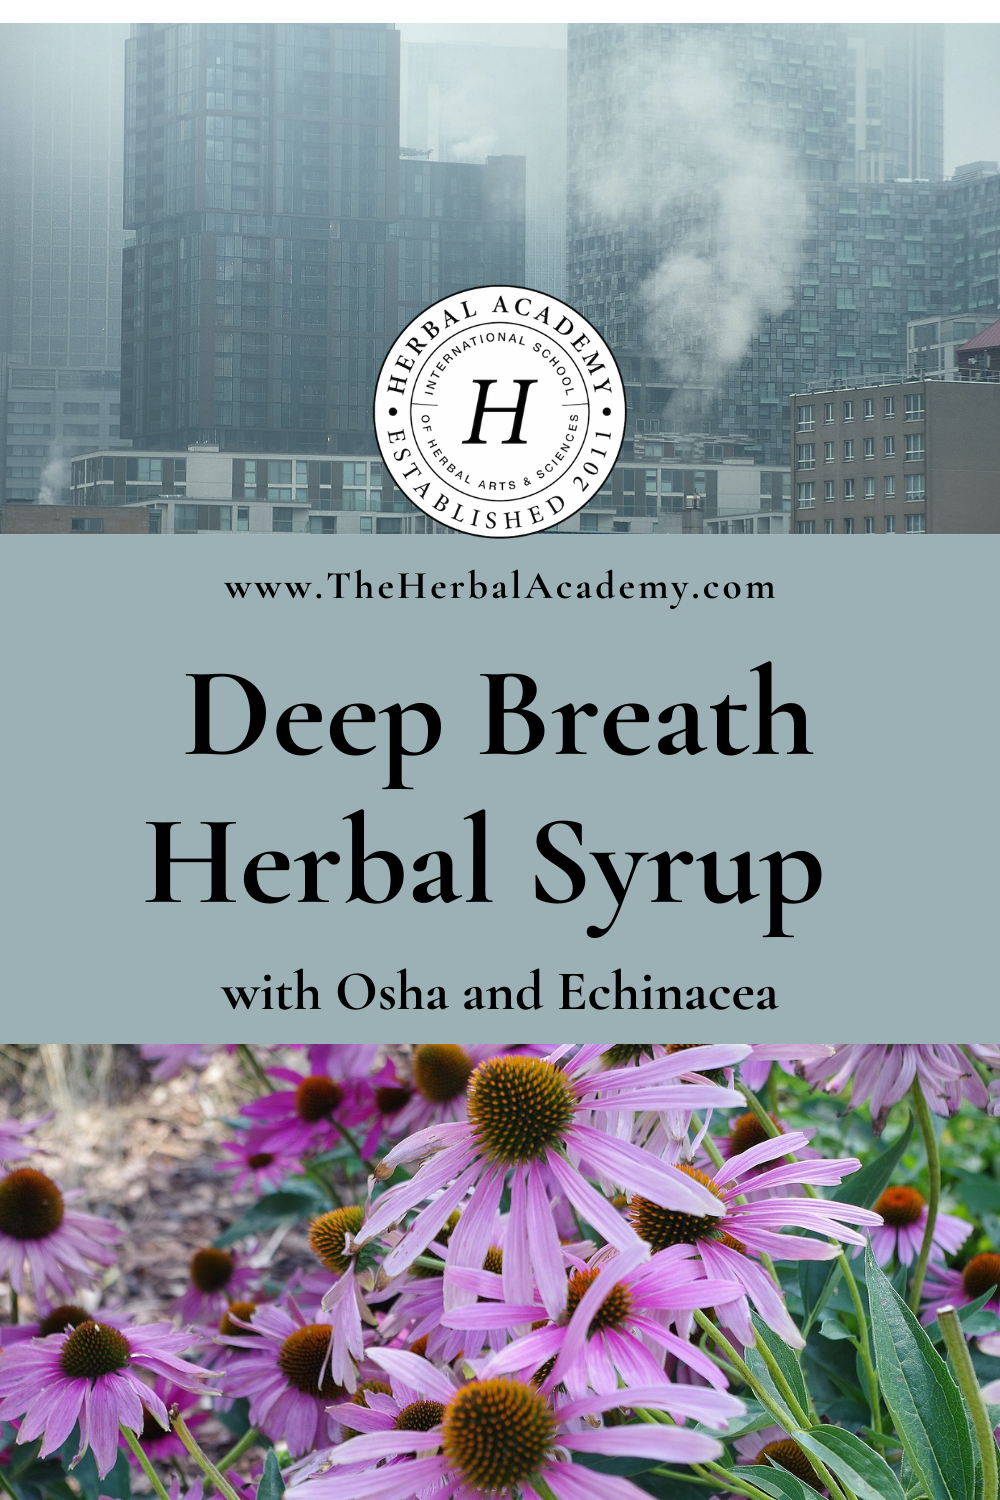 Deep Breath Herbal Osha and Echinacea Syrup Recipe | Herbal Academy | This herbal osha and echinacea syrup recipe is an effective at home and on-the-go support for the lungs and a daily immune-booster.